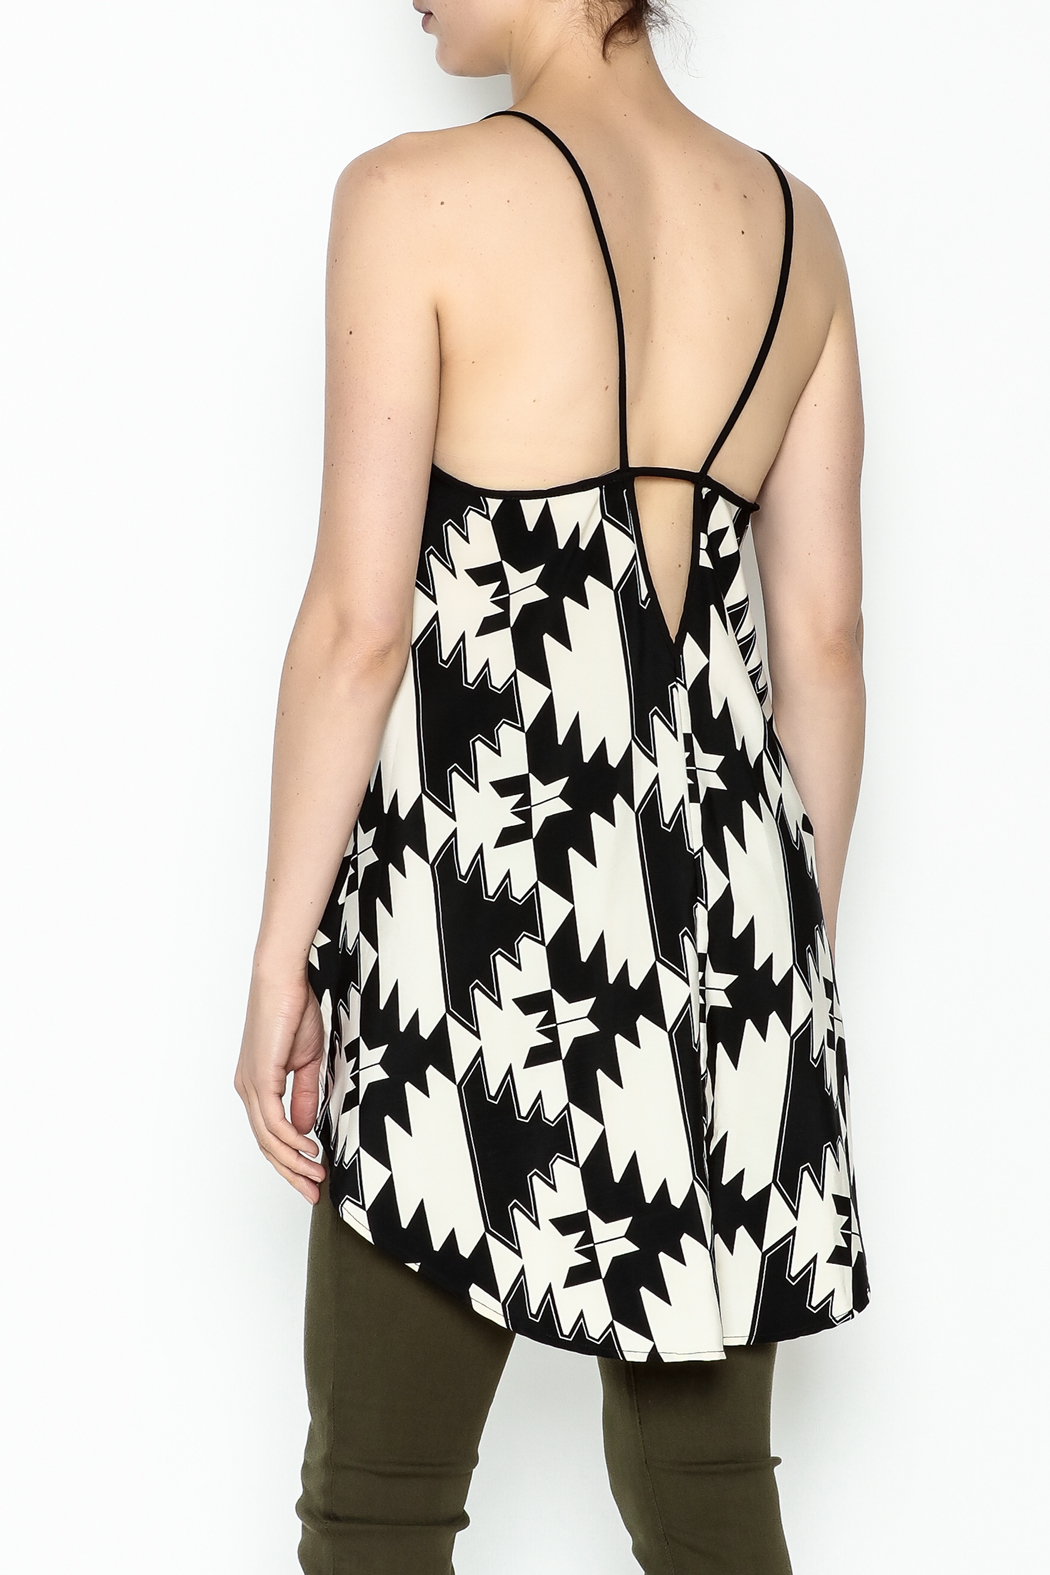 Elise Multicolor Party Top - Back Cropped Image